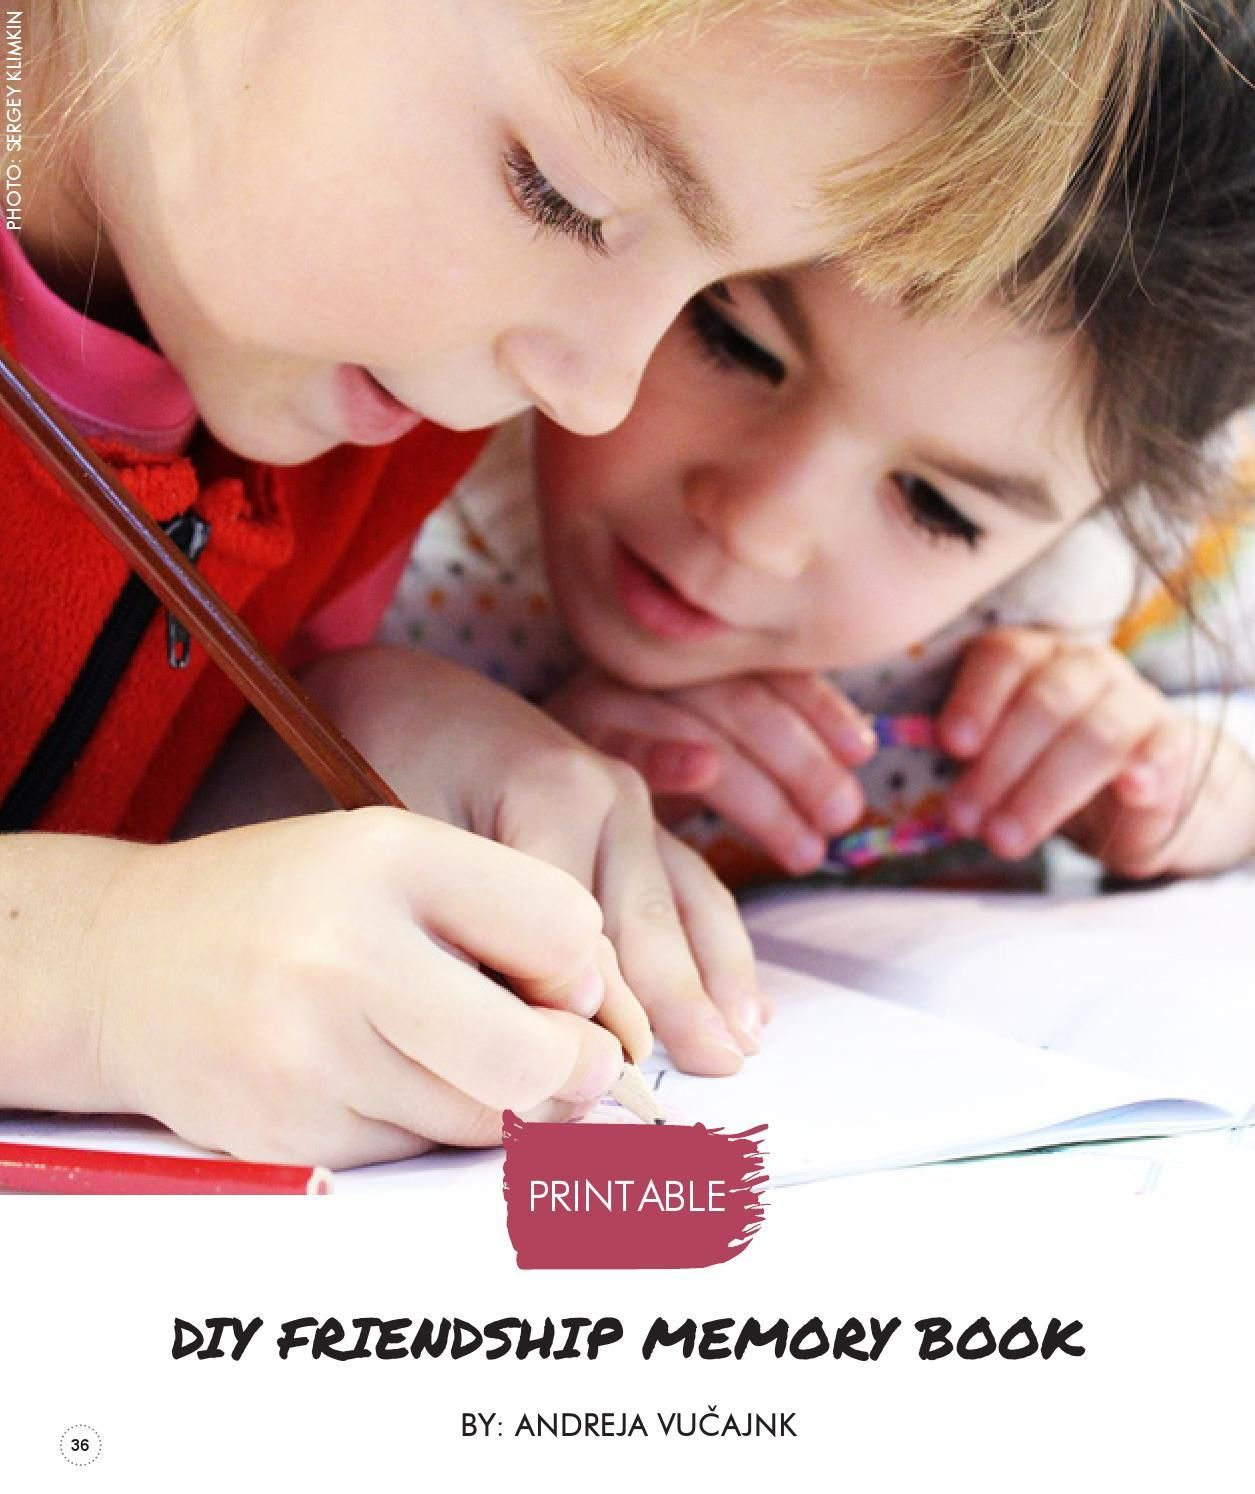 DIY friendship memory book. Great idea for Valentine's day kids activity too. By Andreja Vucajnk (Itsy Bitsy Fun) on Kids Nation Magazine - Edition 9 January/February 2016